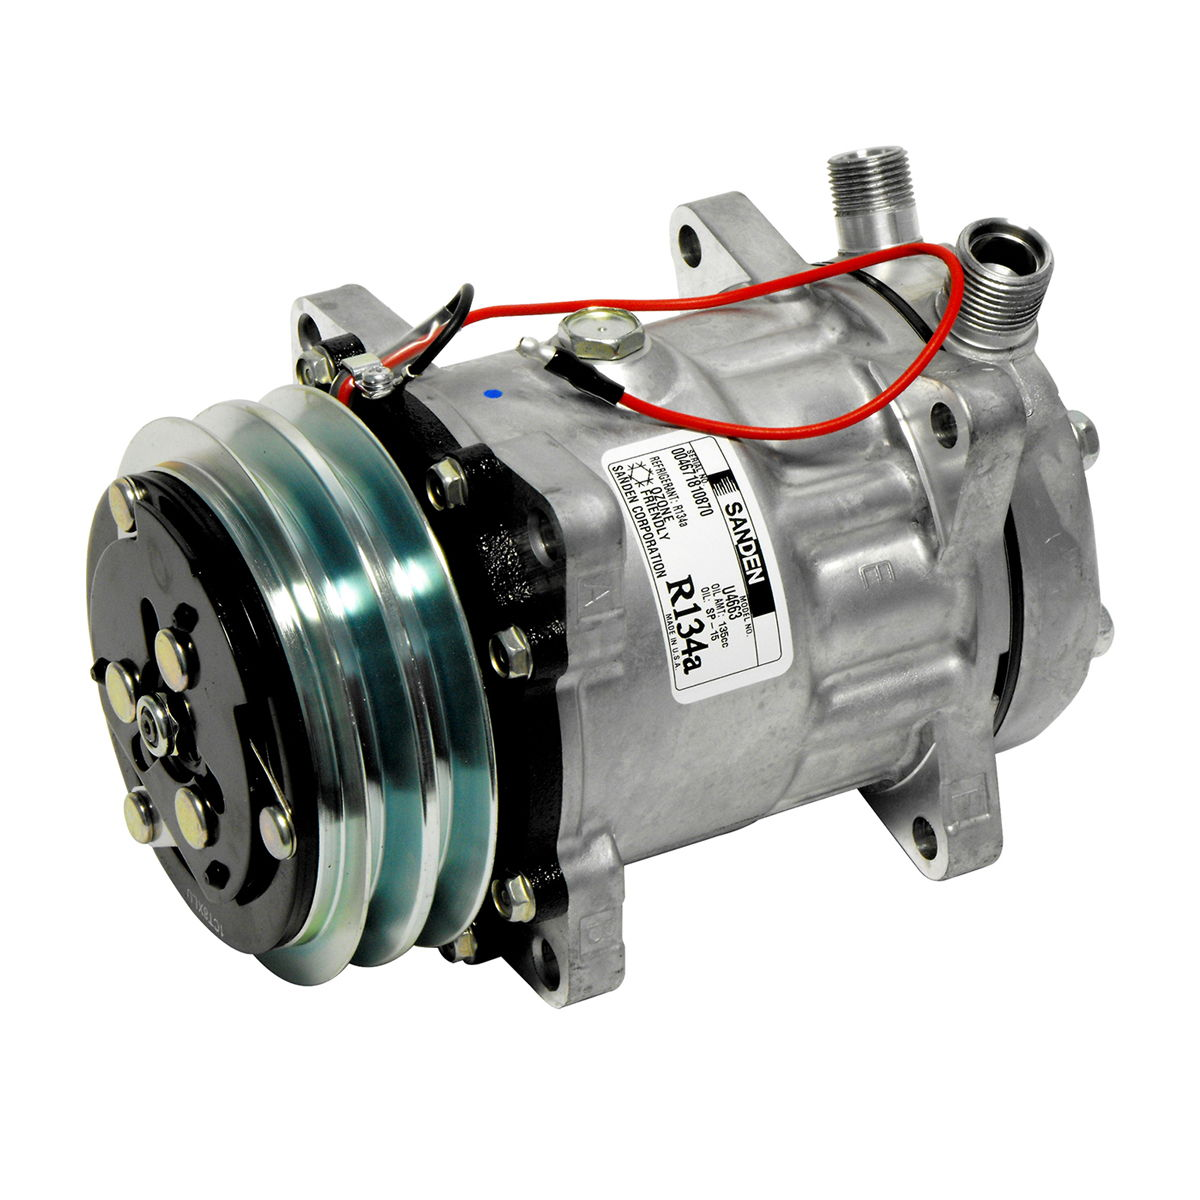 ORIGINAL SANDEN A/C Compressor with Clutch CO 4663